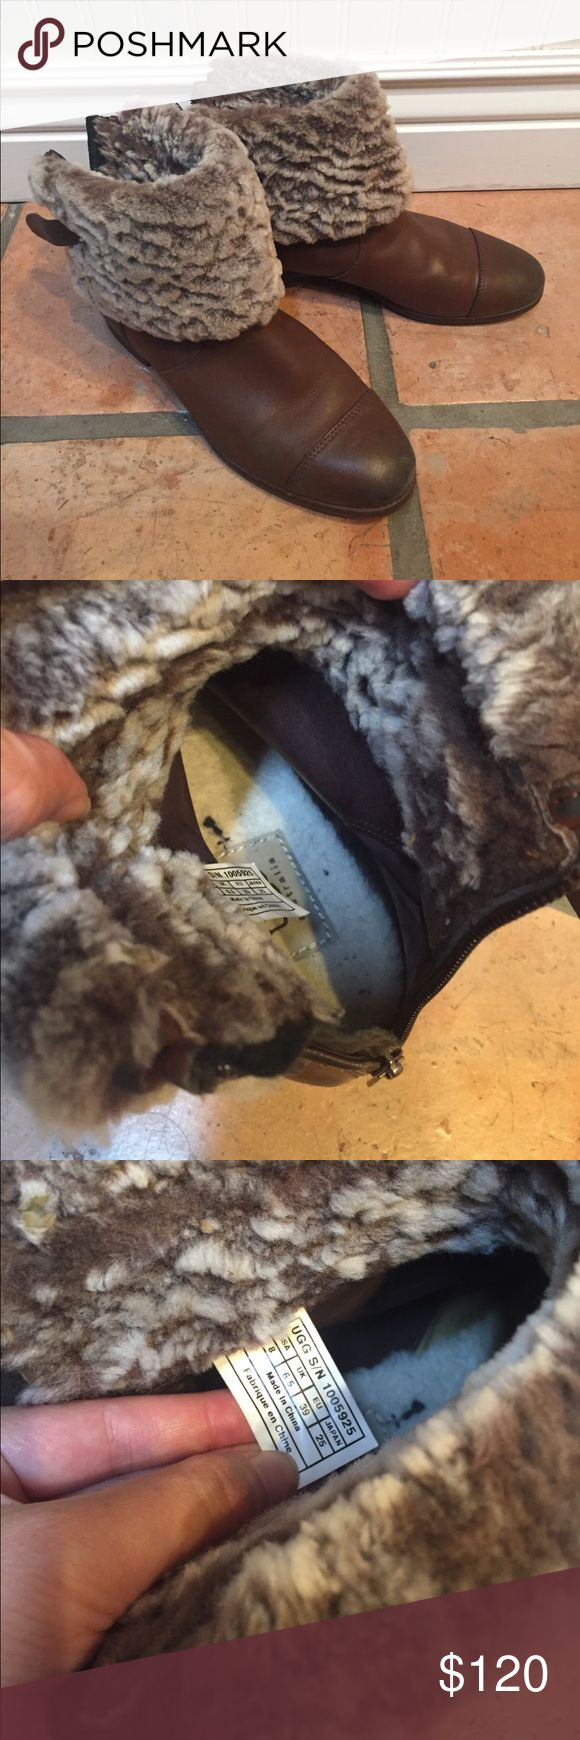 Cute UGG Sheepskin lined Leather Boots Very cute UGG leather boots! Used but in good condition. Signs of wear on the front and back of the boots. Soles in great condition. Hard to find in brown and sold out in retail. UGG Shoes Ankle Boots & Booties